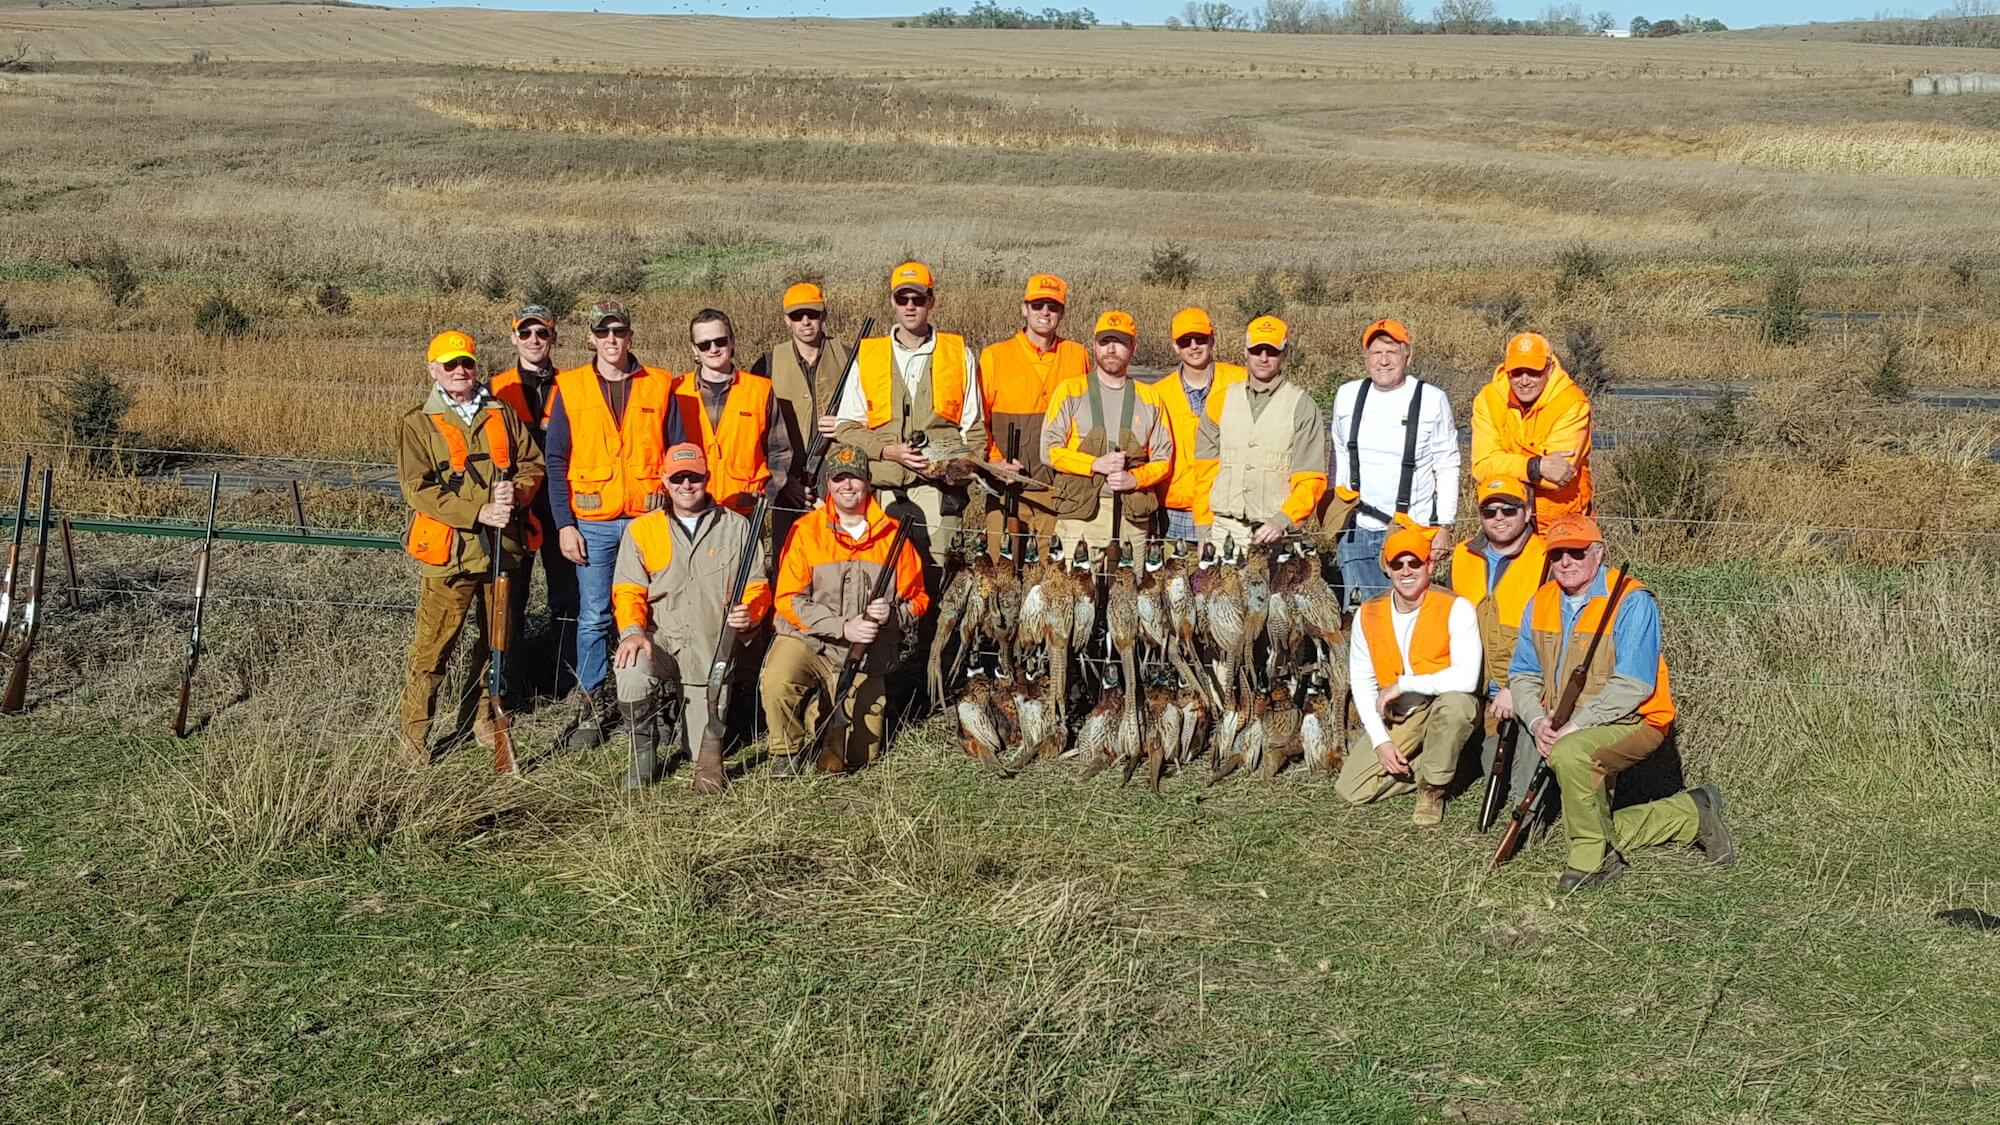 2017 Cimpl Made Hunts Pheasant Hunting South Dakota 8.jpg